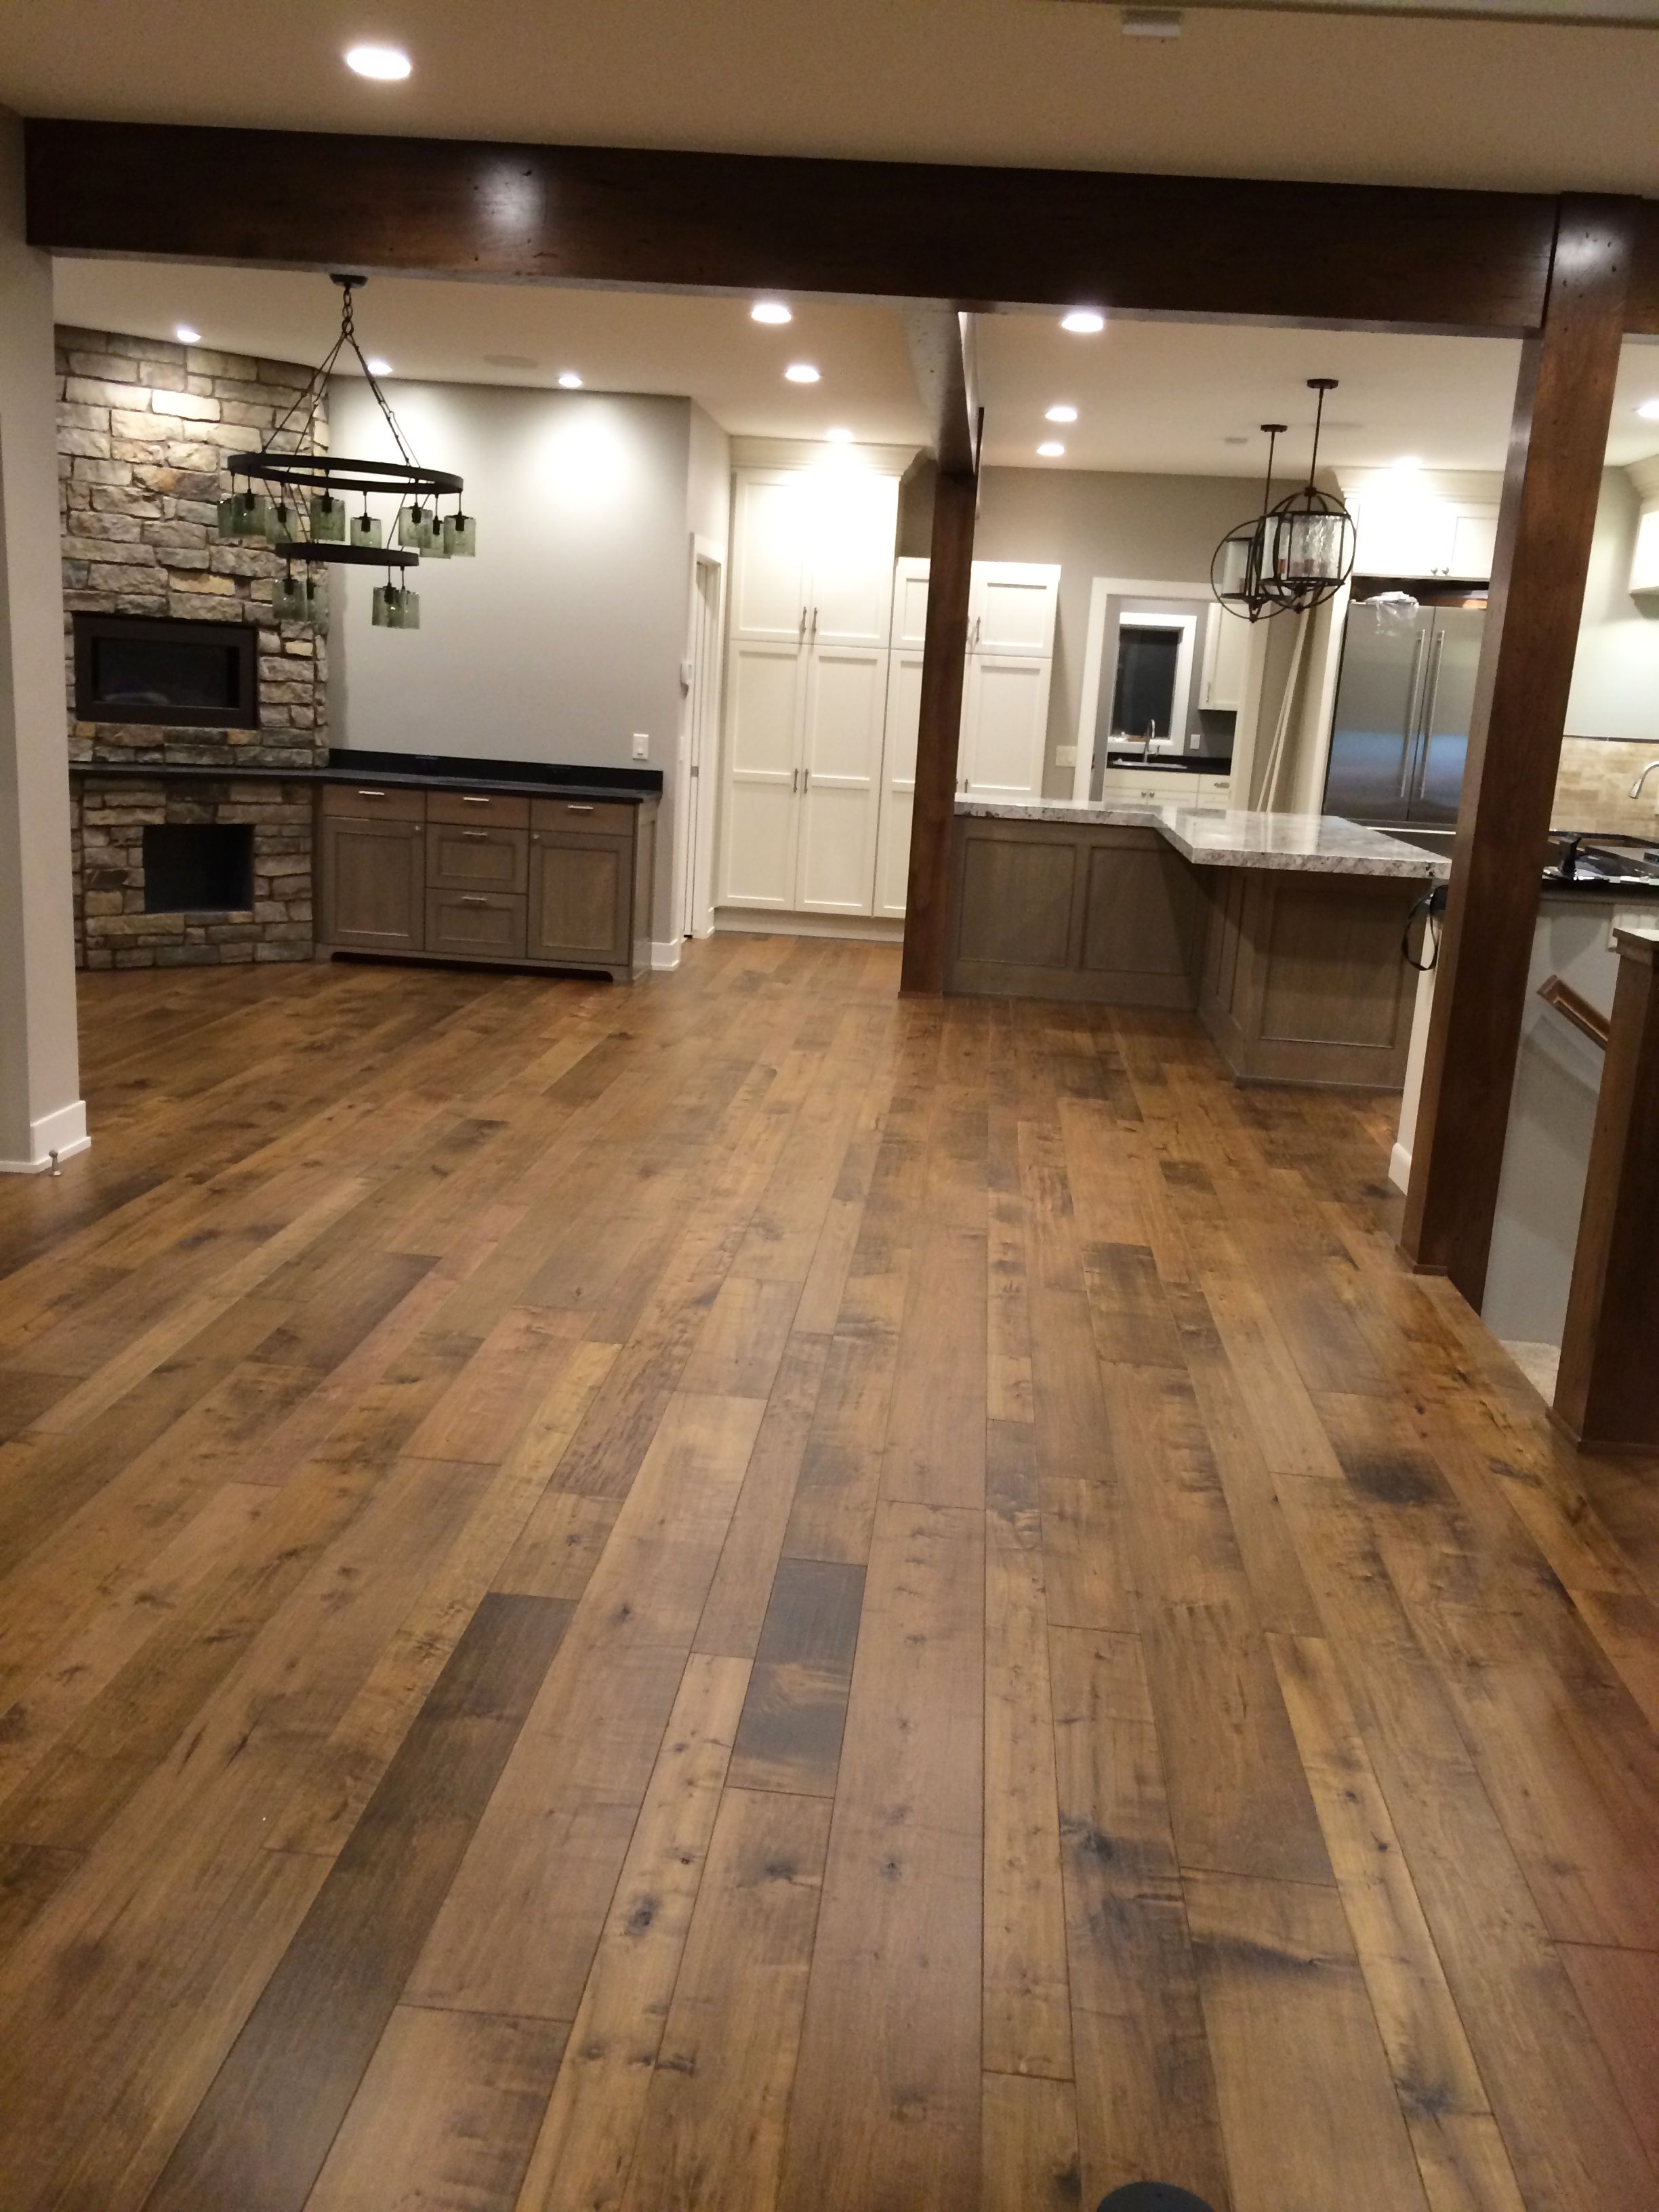 engineered wood flooring kitchen monterey hardwood collection rooms and spaces 7060